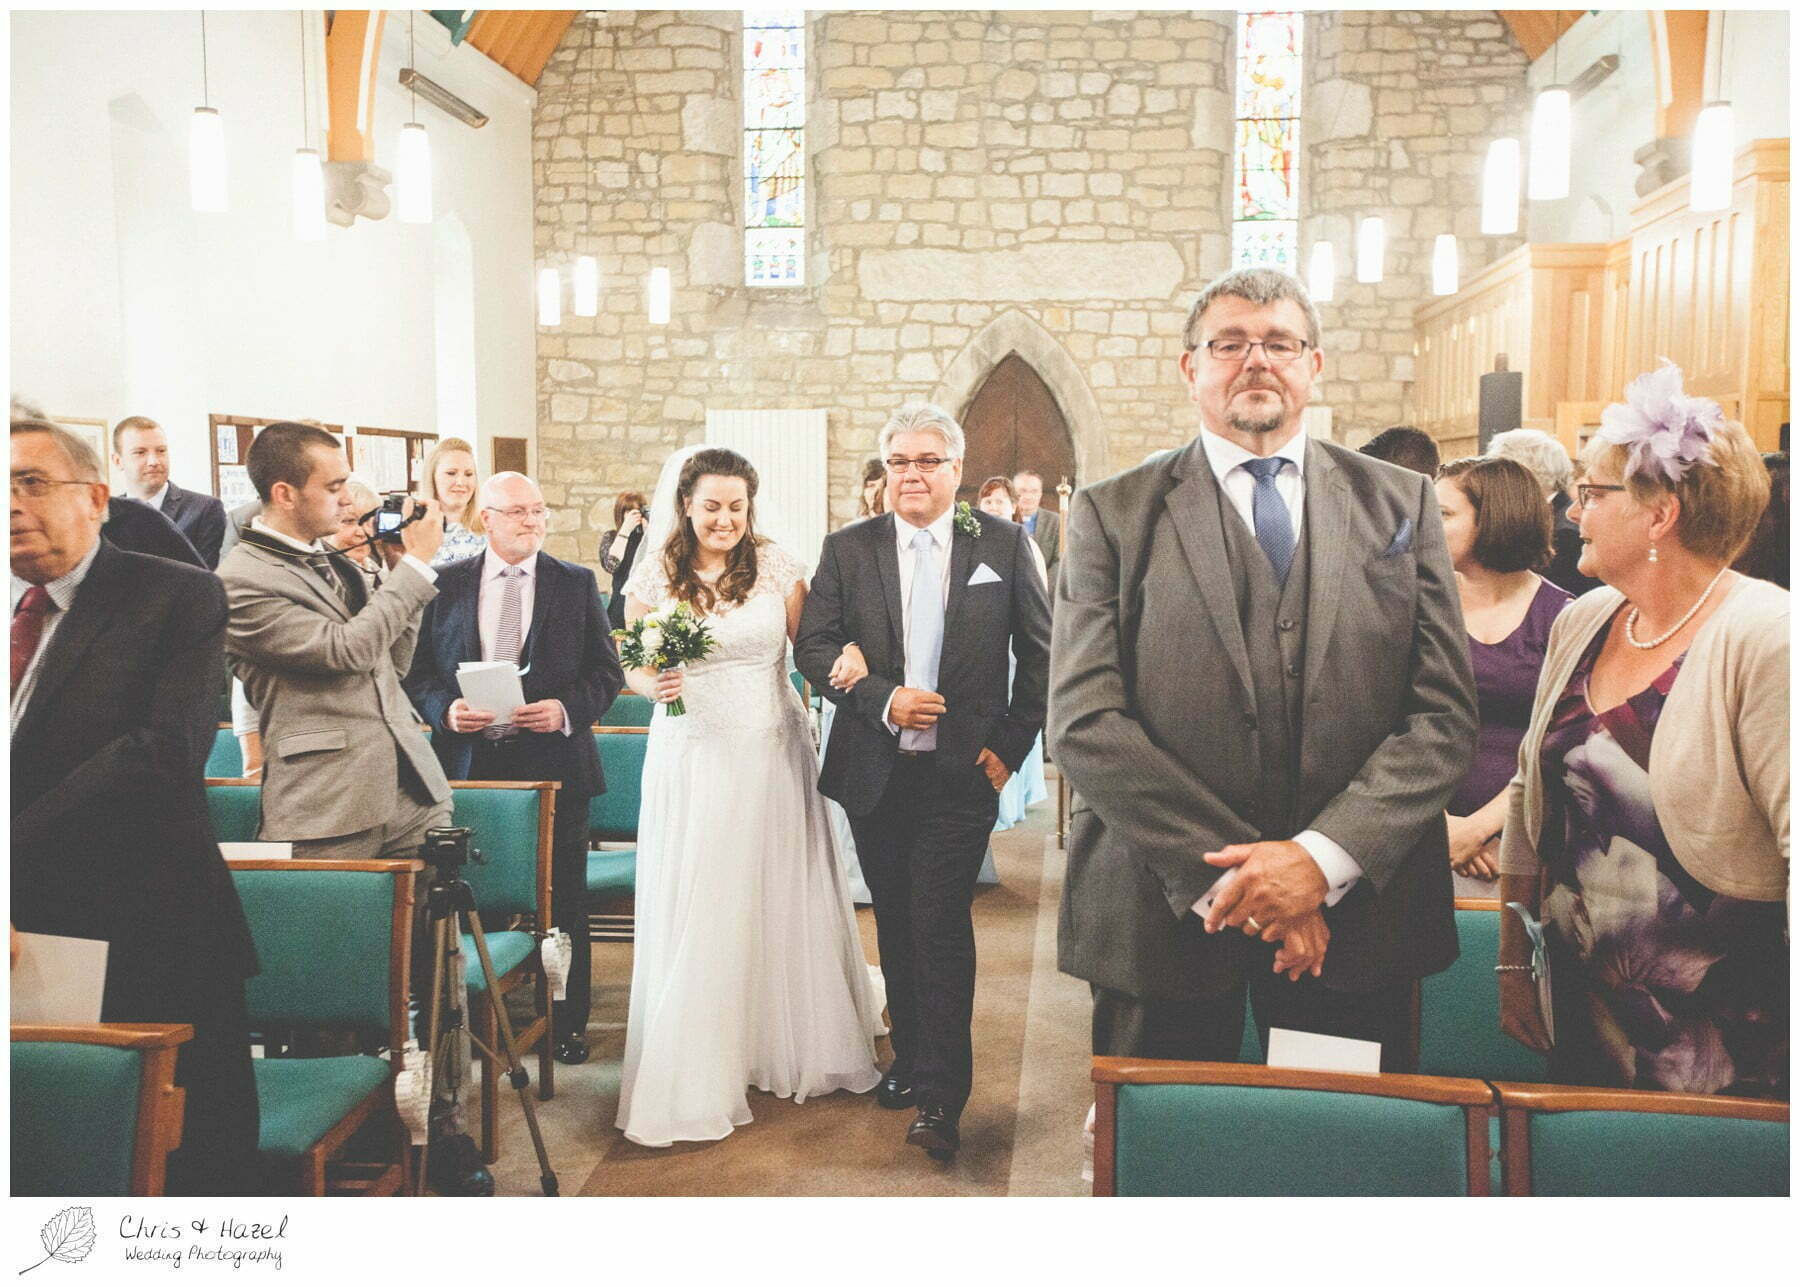 bride and father walking down aisle, st marys church, wedding, south milford Wedding Photographer, the engine shed, Wedding Photography wetherby, Chris and Hazel Wedding Photography, stevie pollard, stevie standerline, paul standerline,